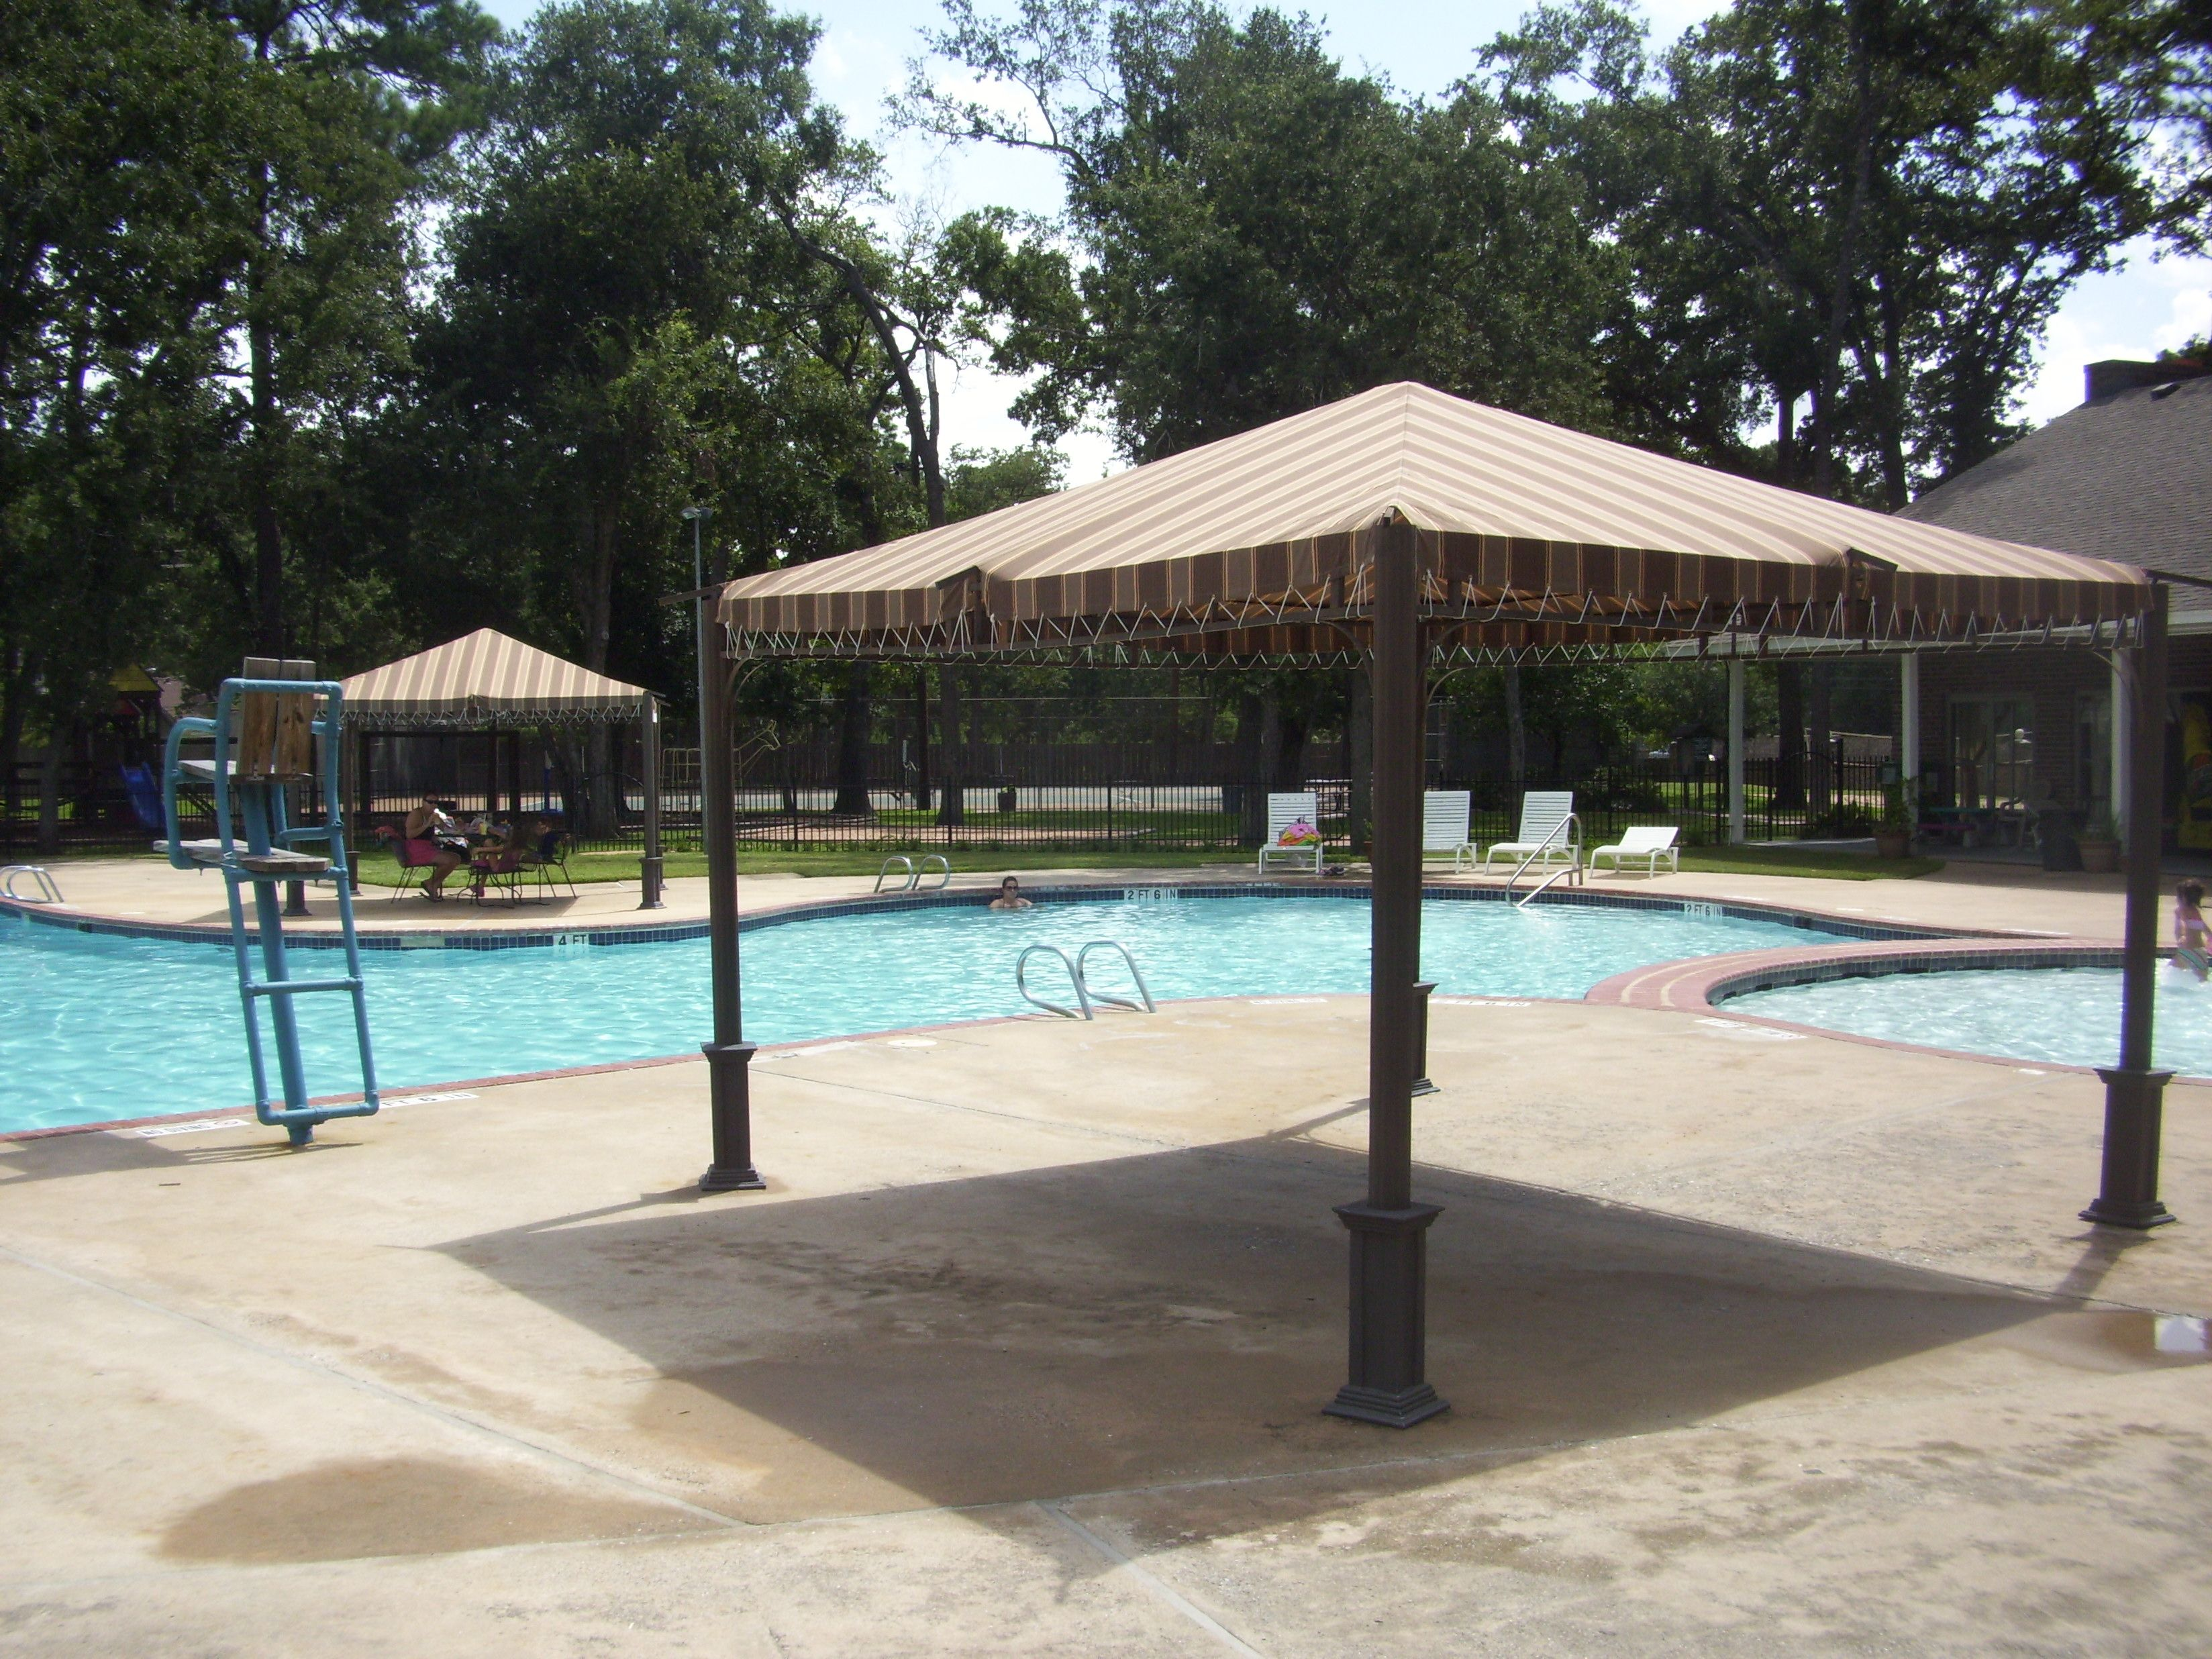 need shade after swimming? come hang out under our shade structure! #awnings #canopies #shadestructures